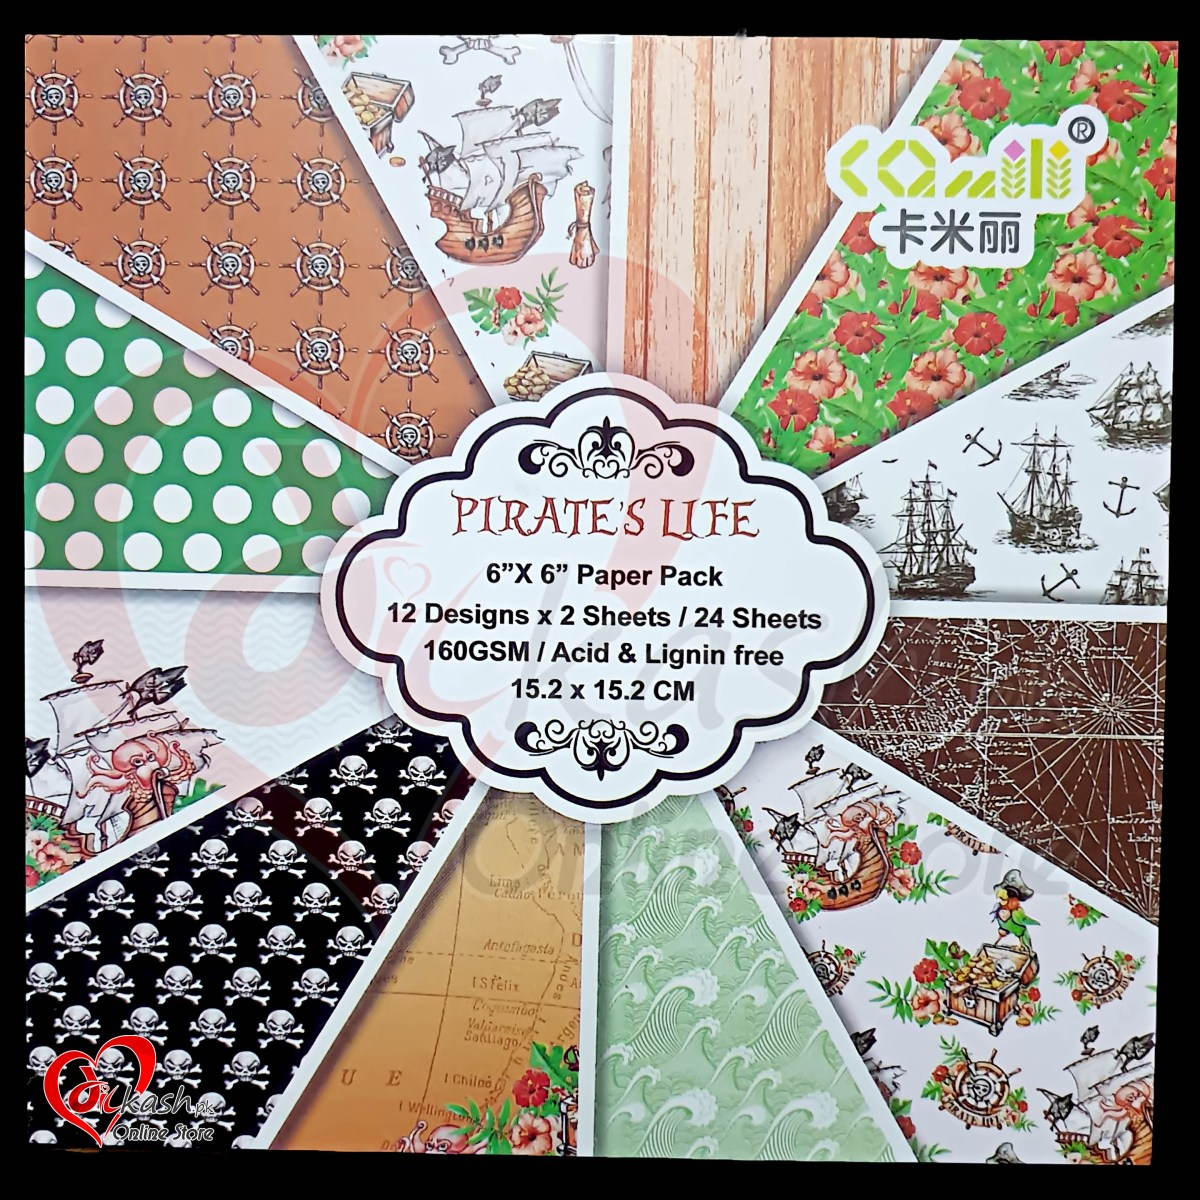 Crafts With Scrapbook Paper Scrapbook Paper Craft Pattern 6x6 Inched Pattern Paper Pirates Life